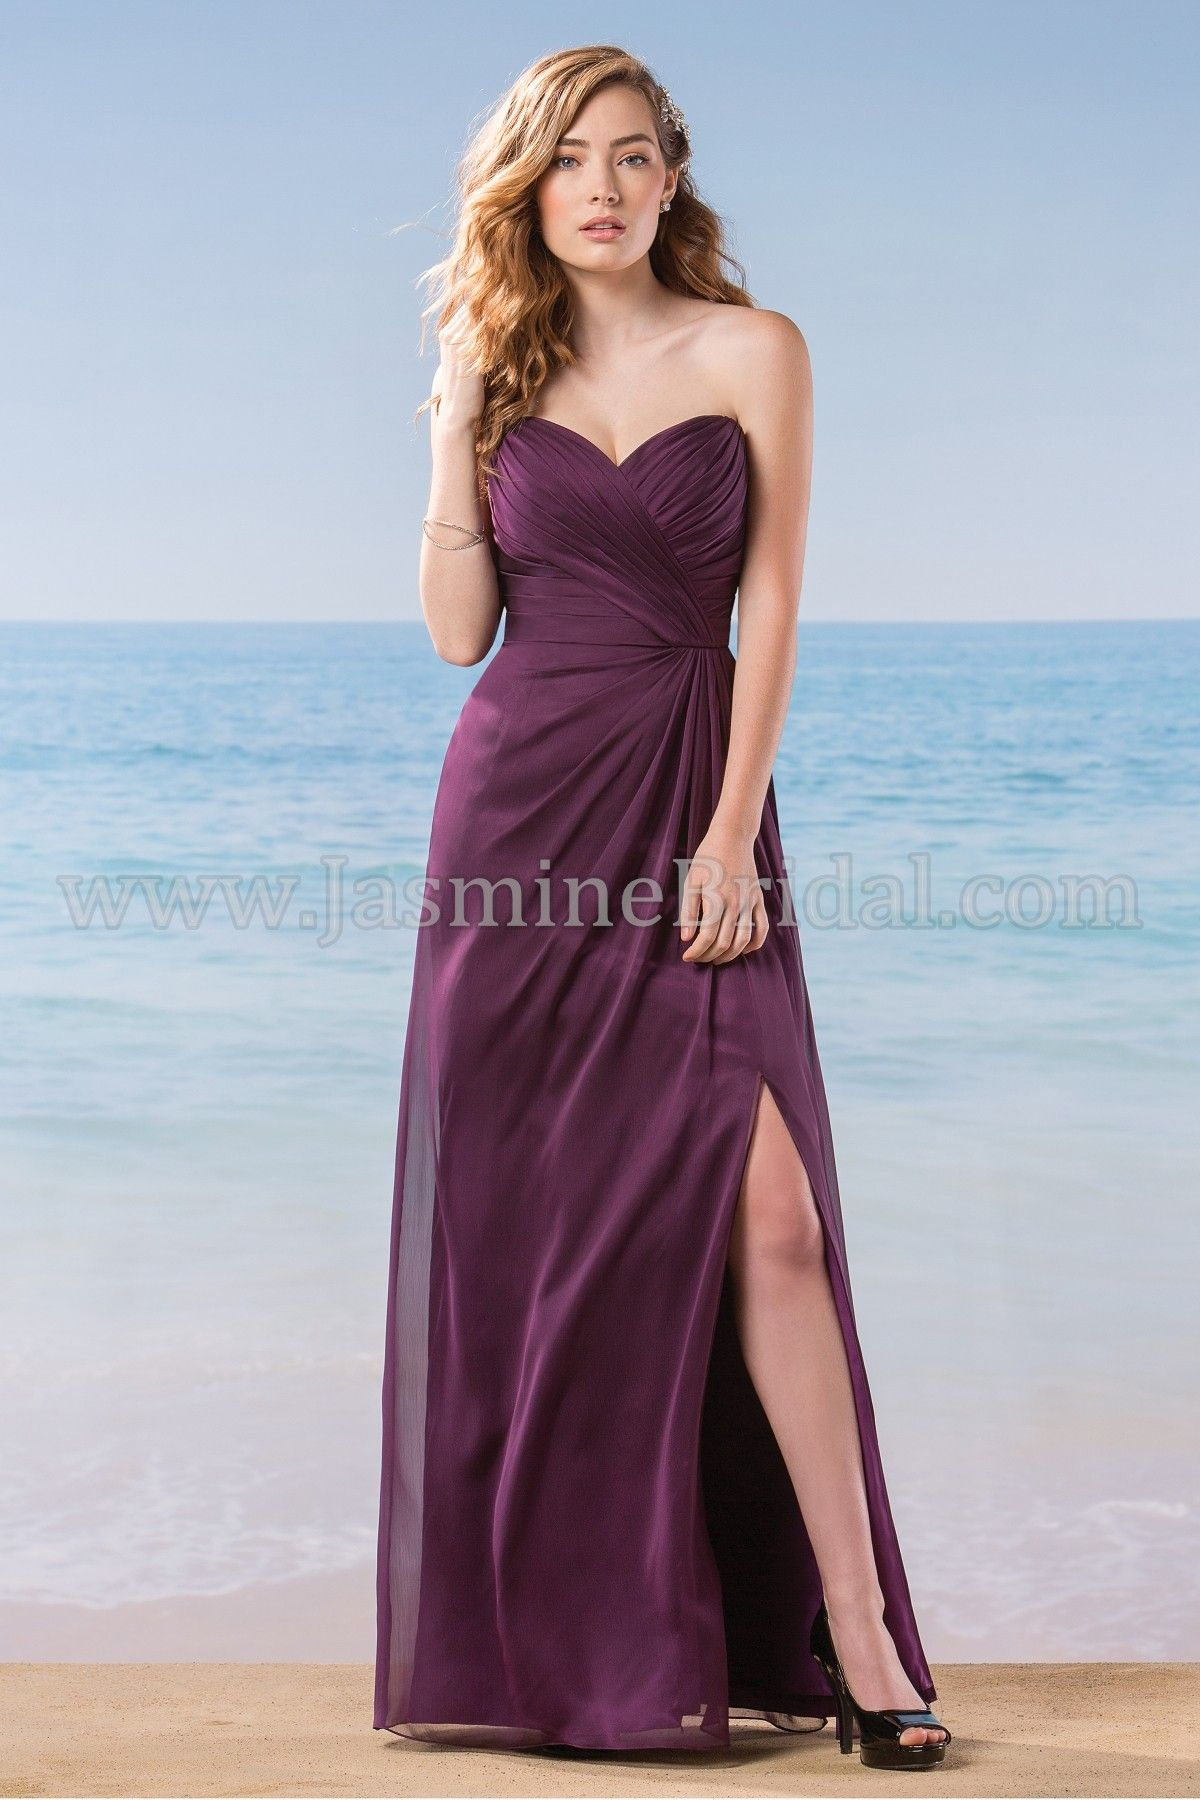 Jasmine Bridal Bridesmaid Dress Belsoie Style L184003 in Bordeaux ...